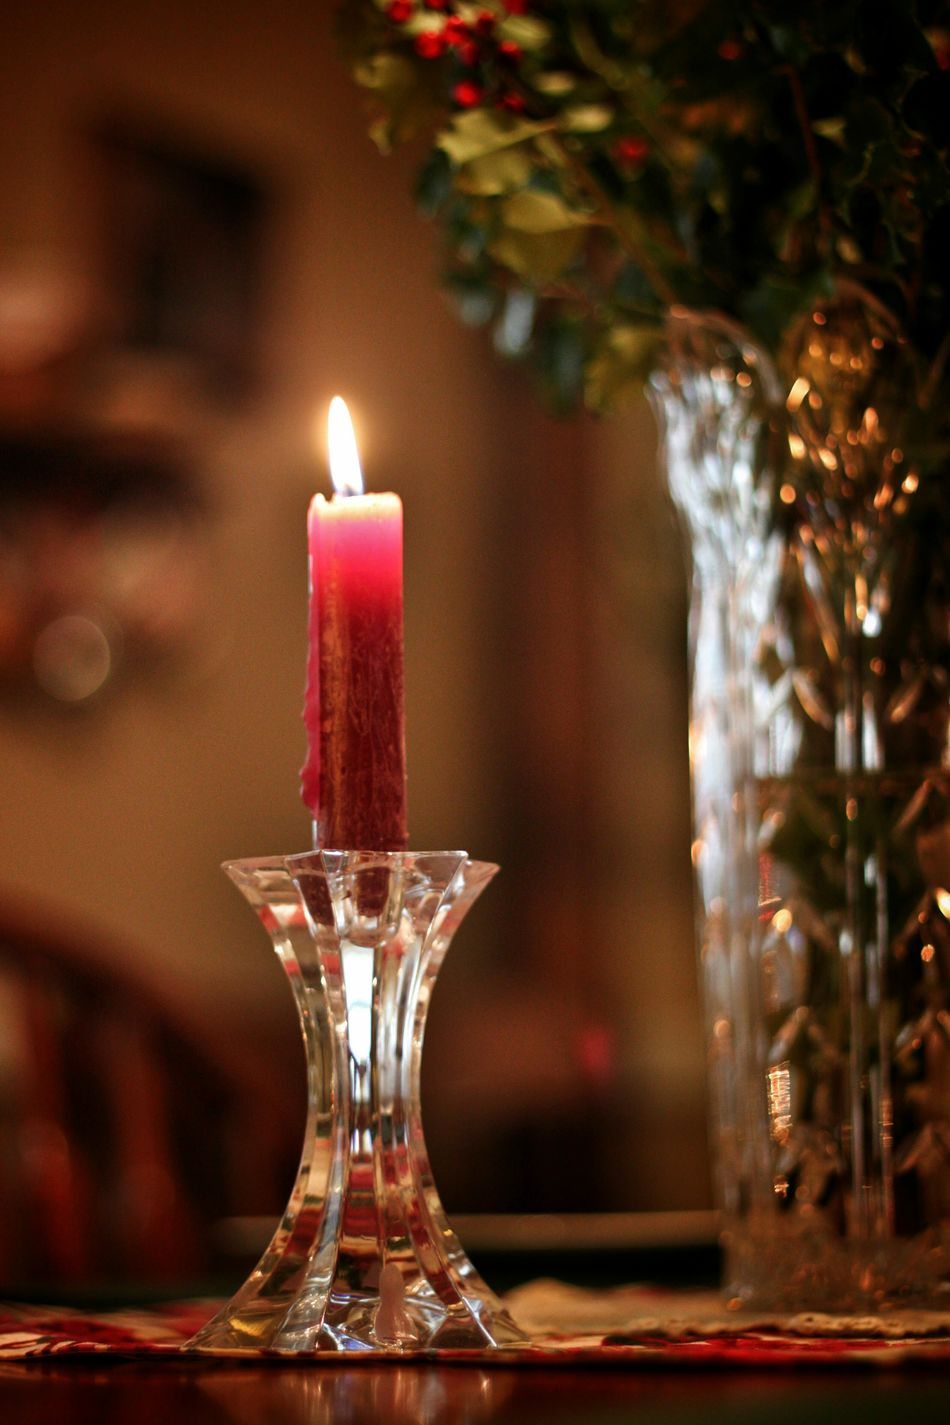 Christmas Time Candlelight Holiday Cheer Relaxing Moments Dining Room Table